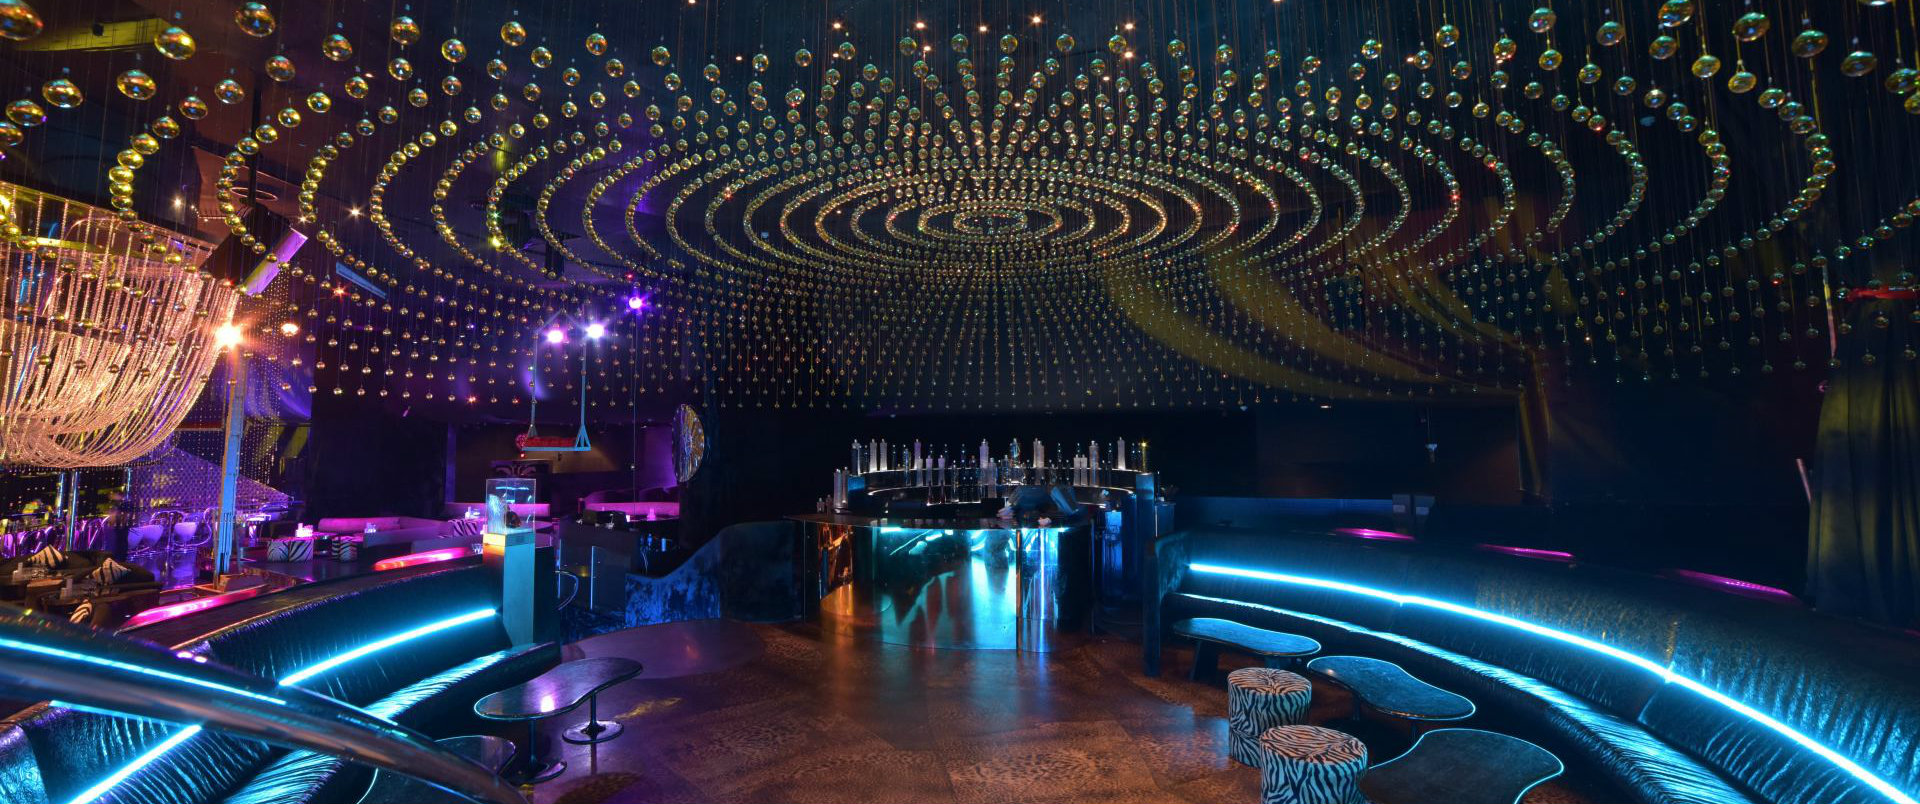 Night Club with Swarovski Crystals by Roberto Cavalli Charming Lighting Designs The Most Charming Lighting Designs for Valentine's Day cover3 Charming Lighting Designs The Most Charming Lighting Designs for Valentine's Day cover3